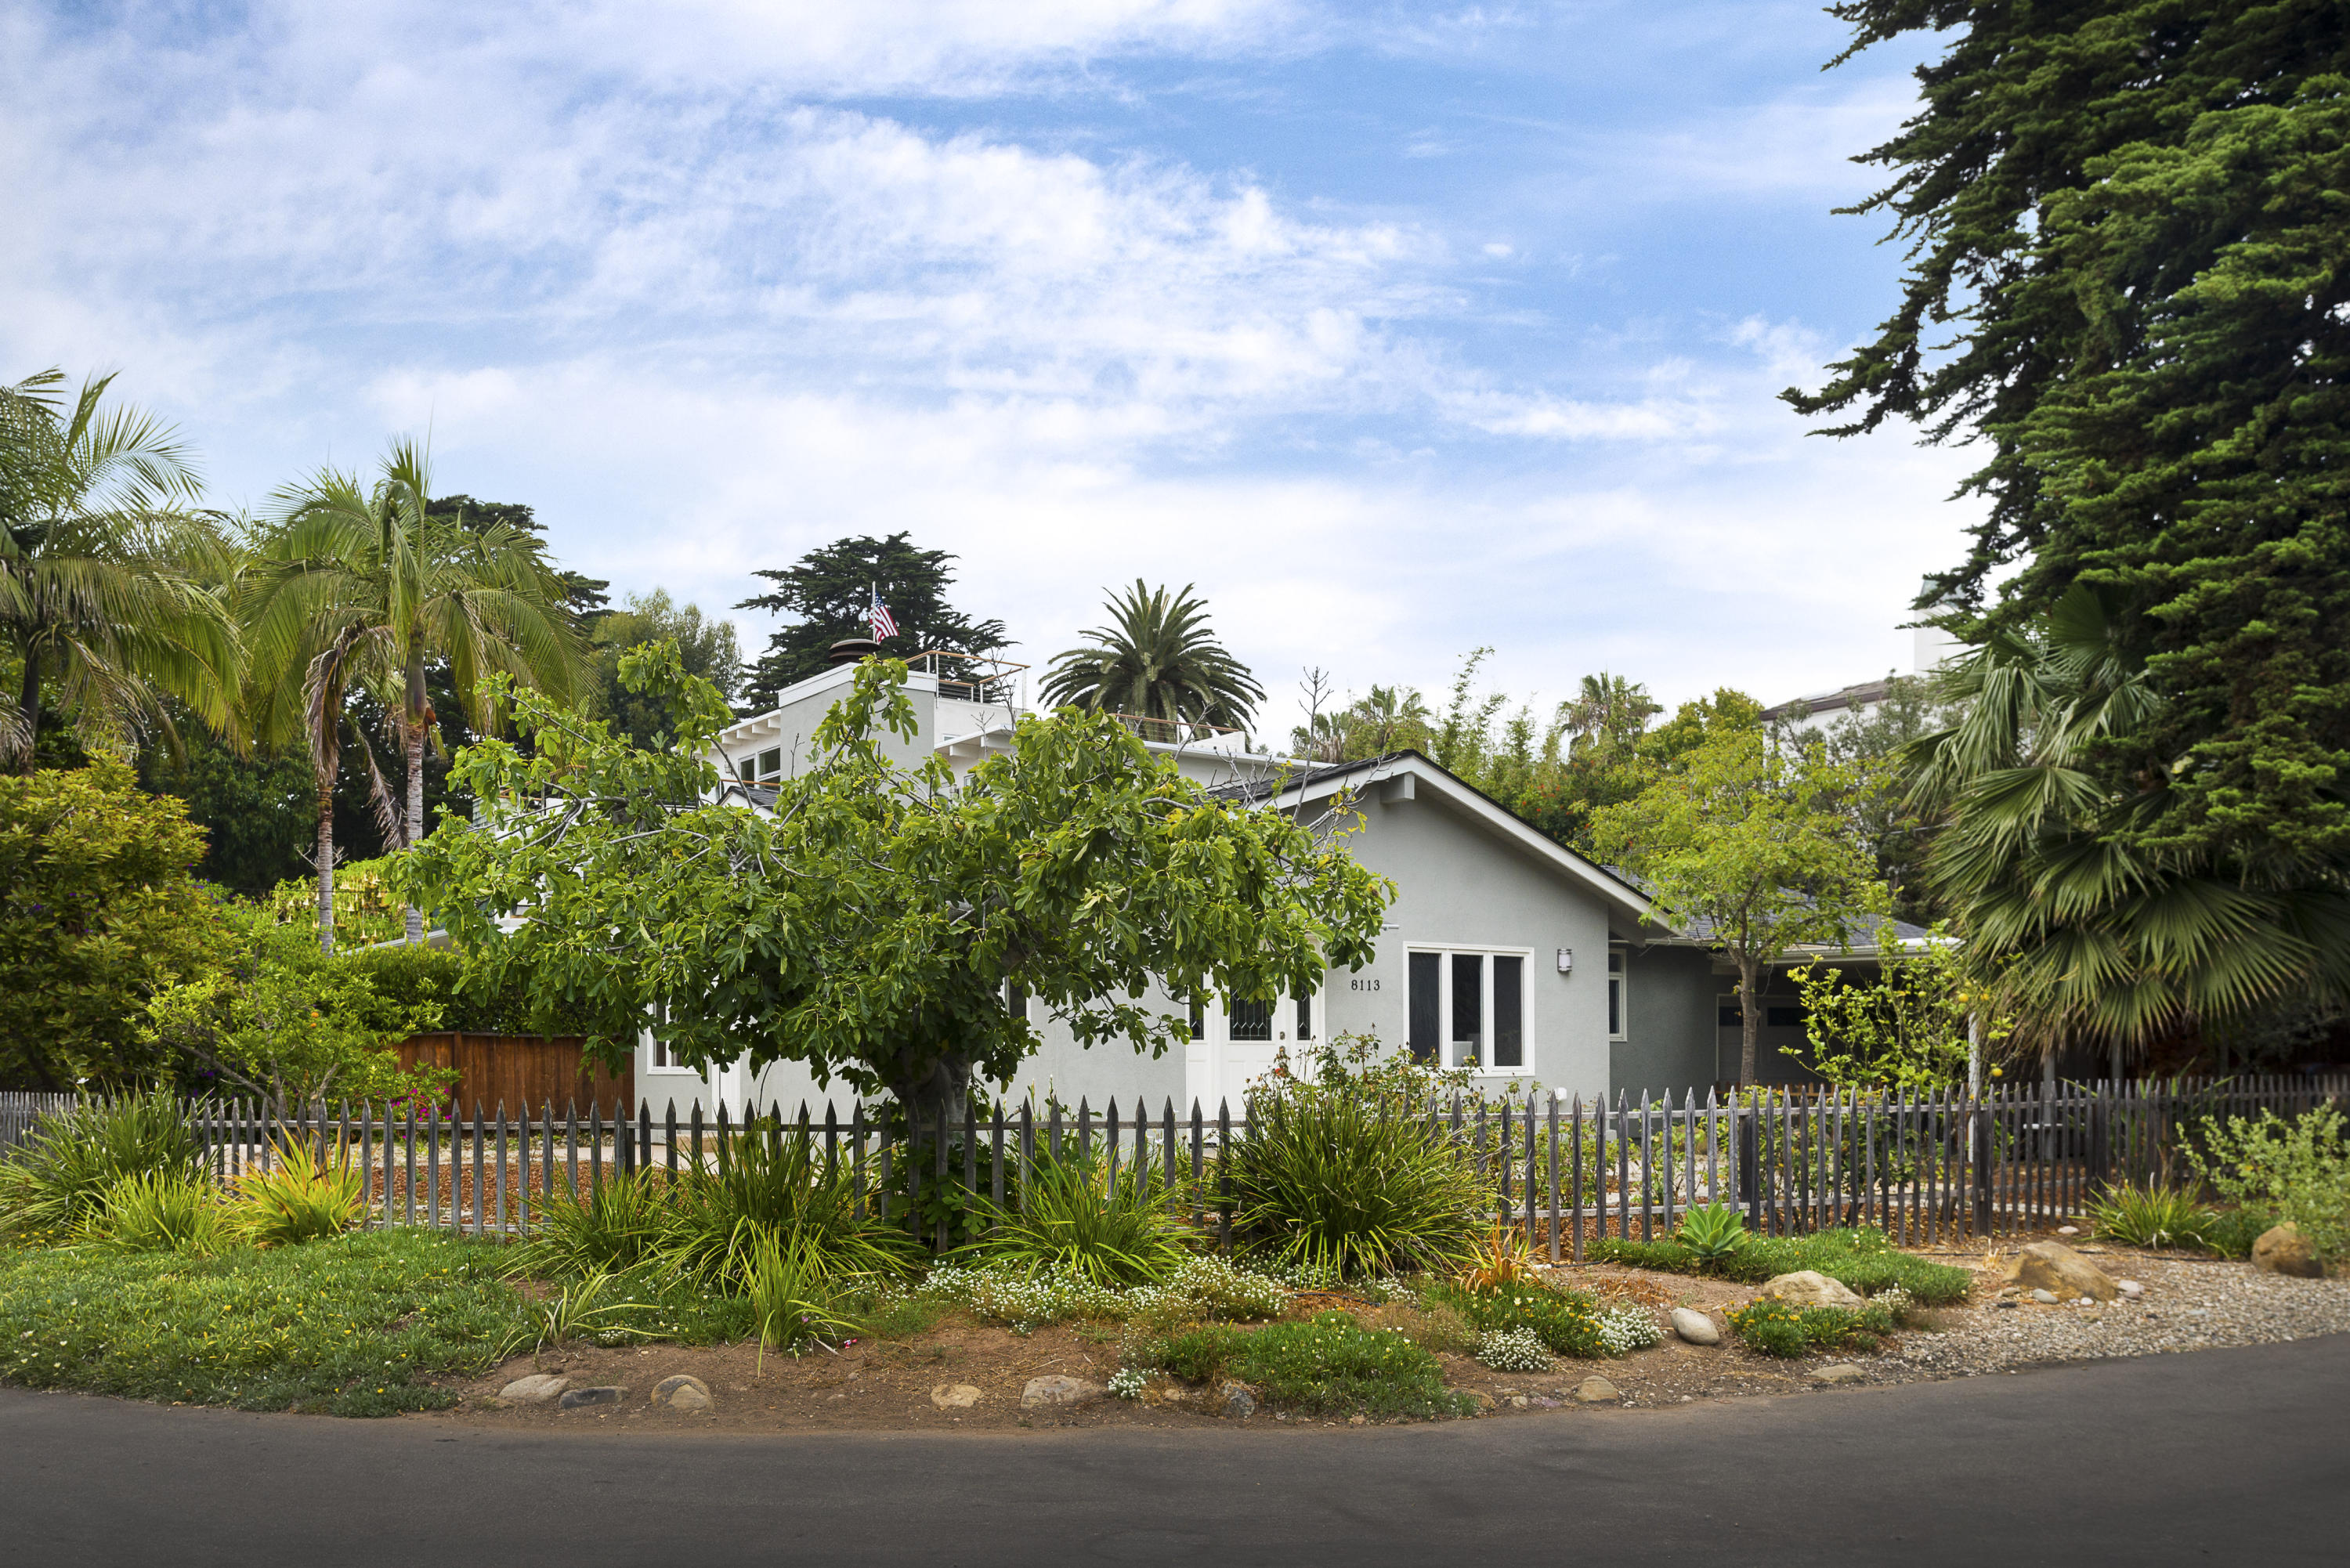 Property photo for 8113 Puesta Del Sol Carpinteria, California 93013 - 16-1988